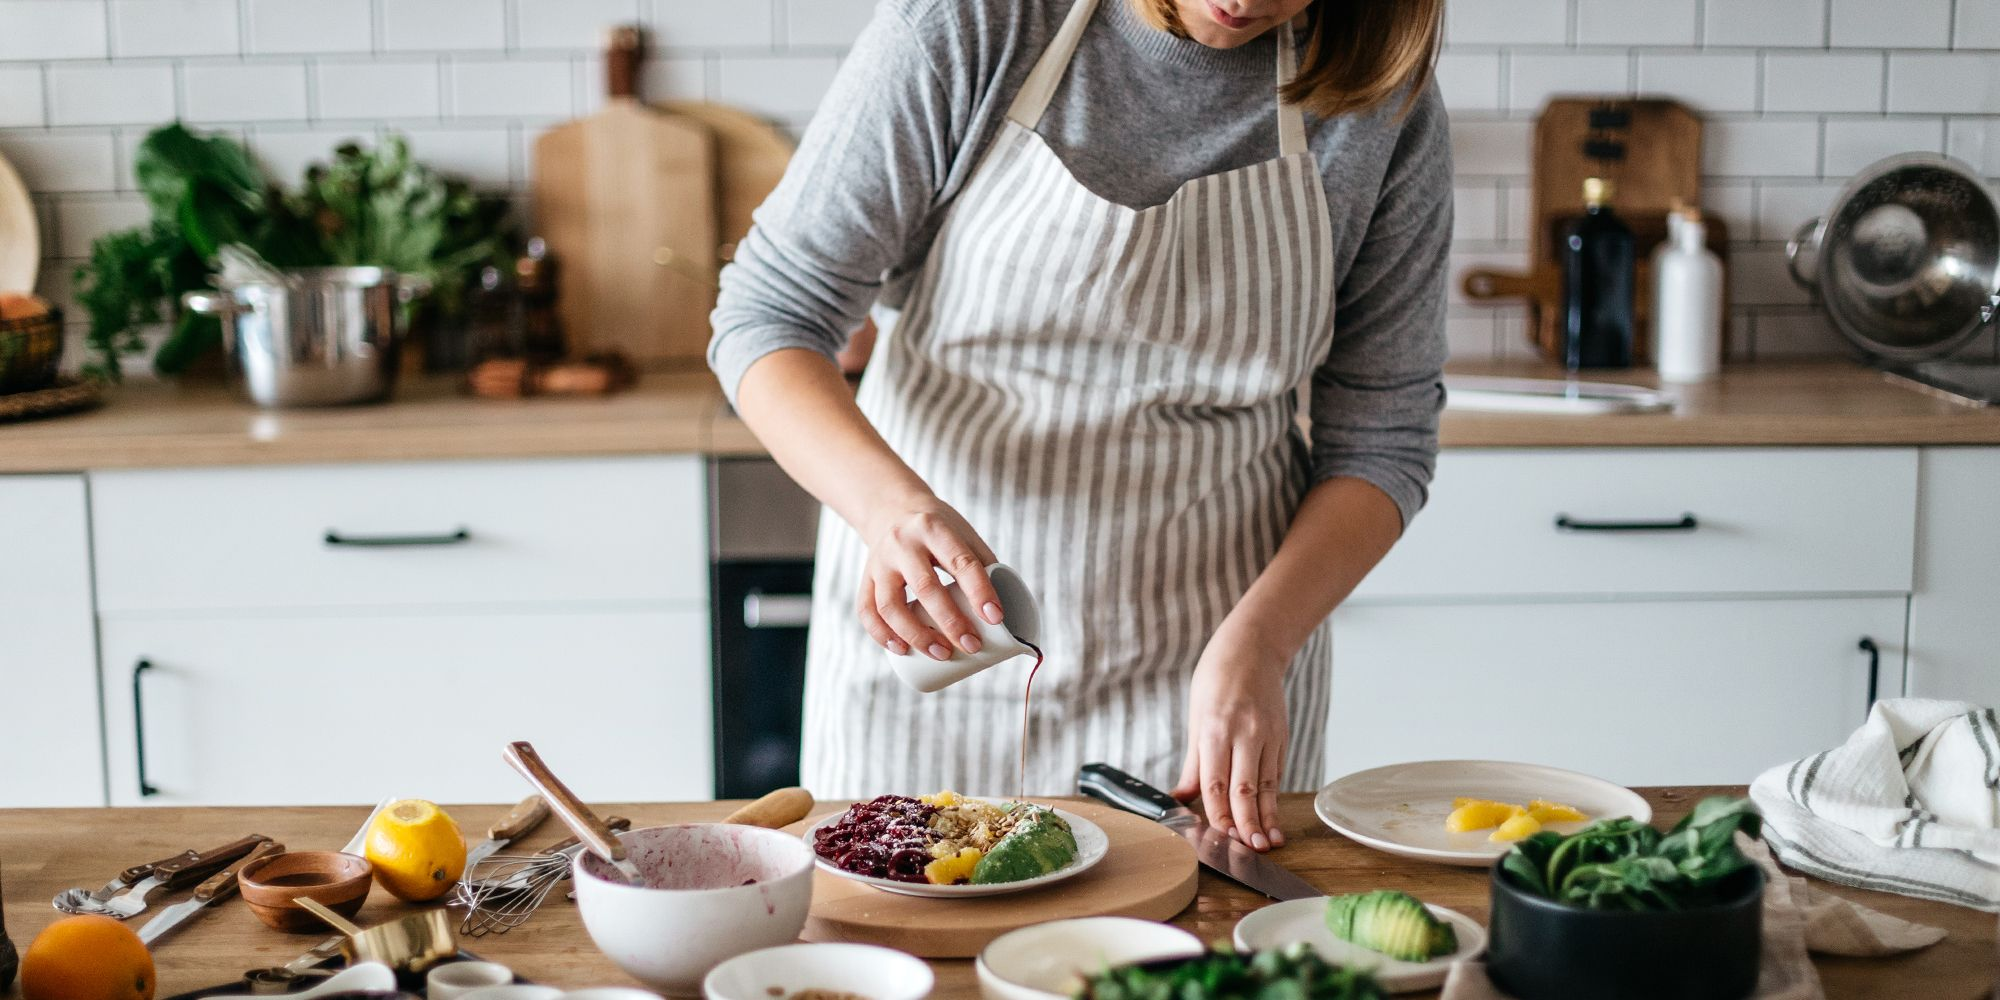 11 Cute Kitchen Aprons for Women 2019 - Cooking Aprons for Chefs